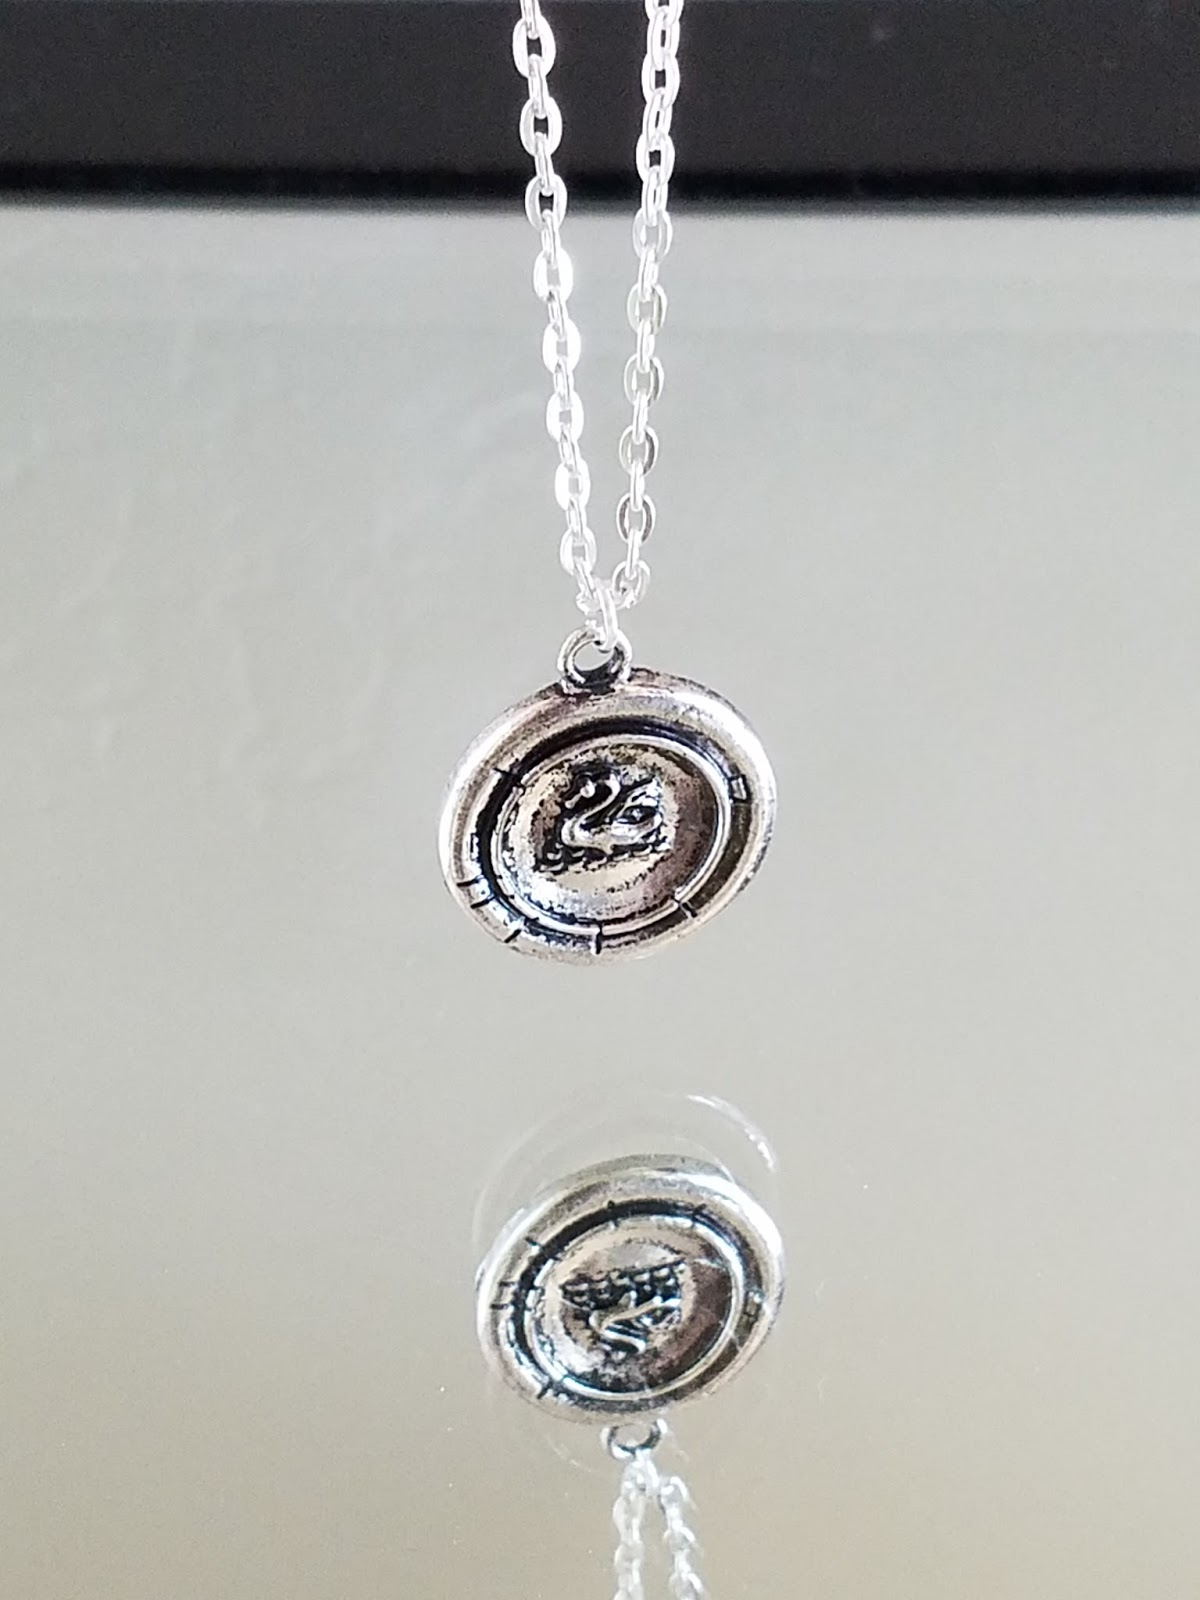 The First 30 Preorder Entries Will All Receive This Cool Swan Pendant  Necklace: